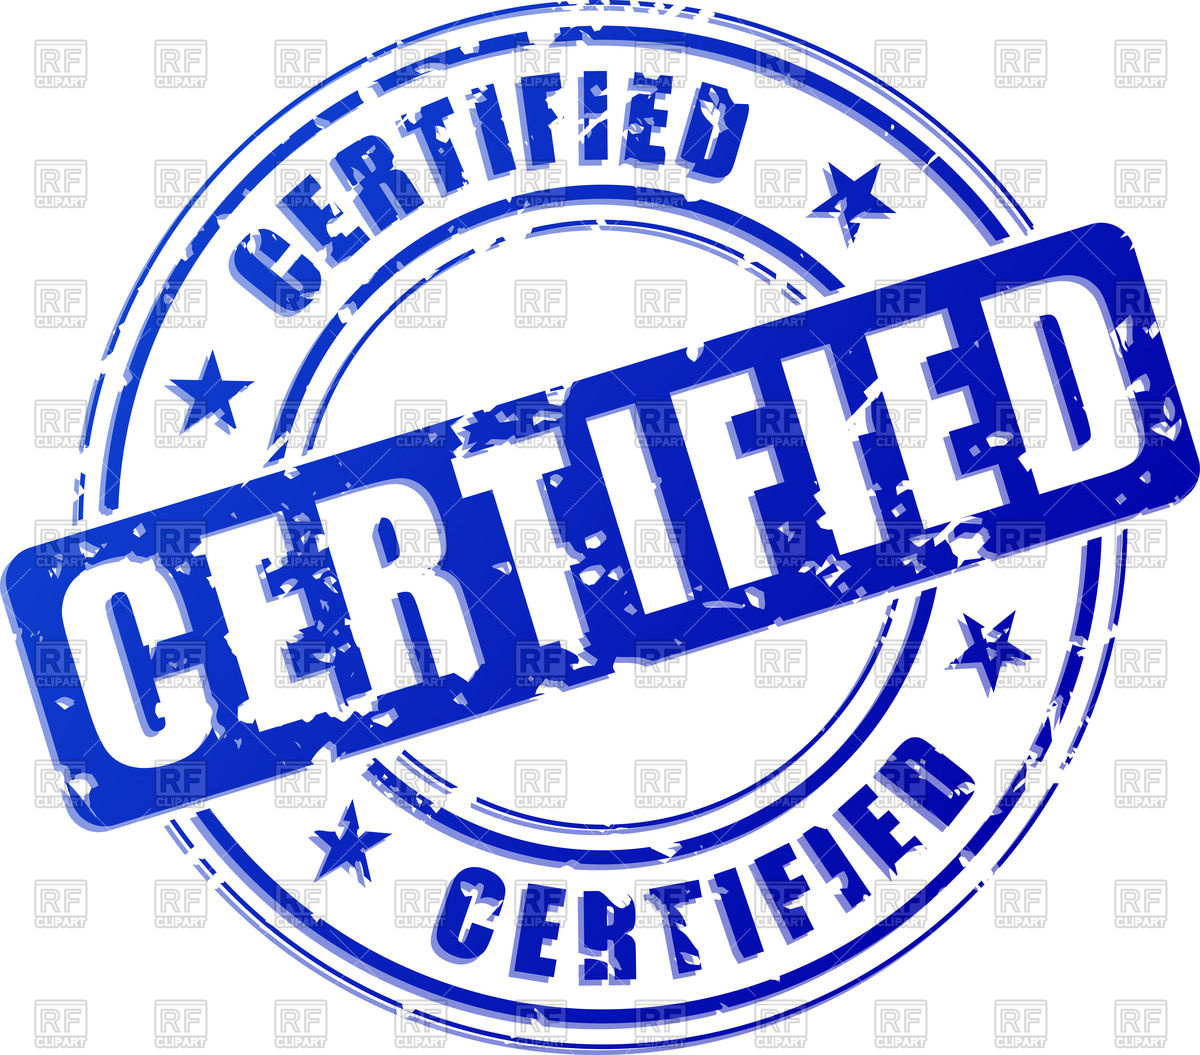 Certify clipart.